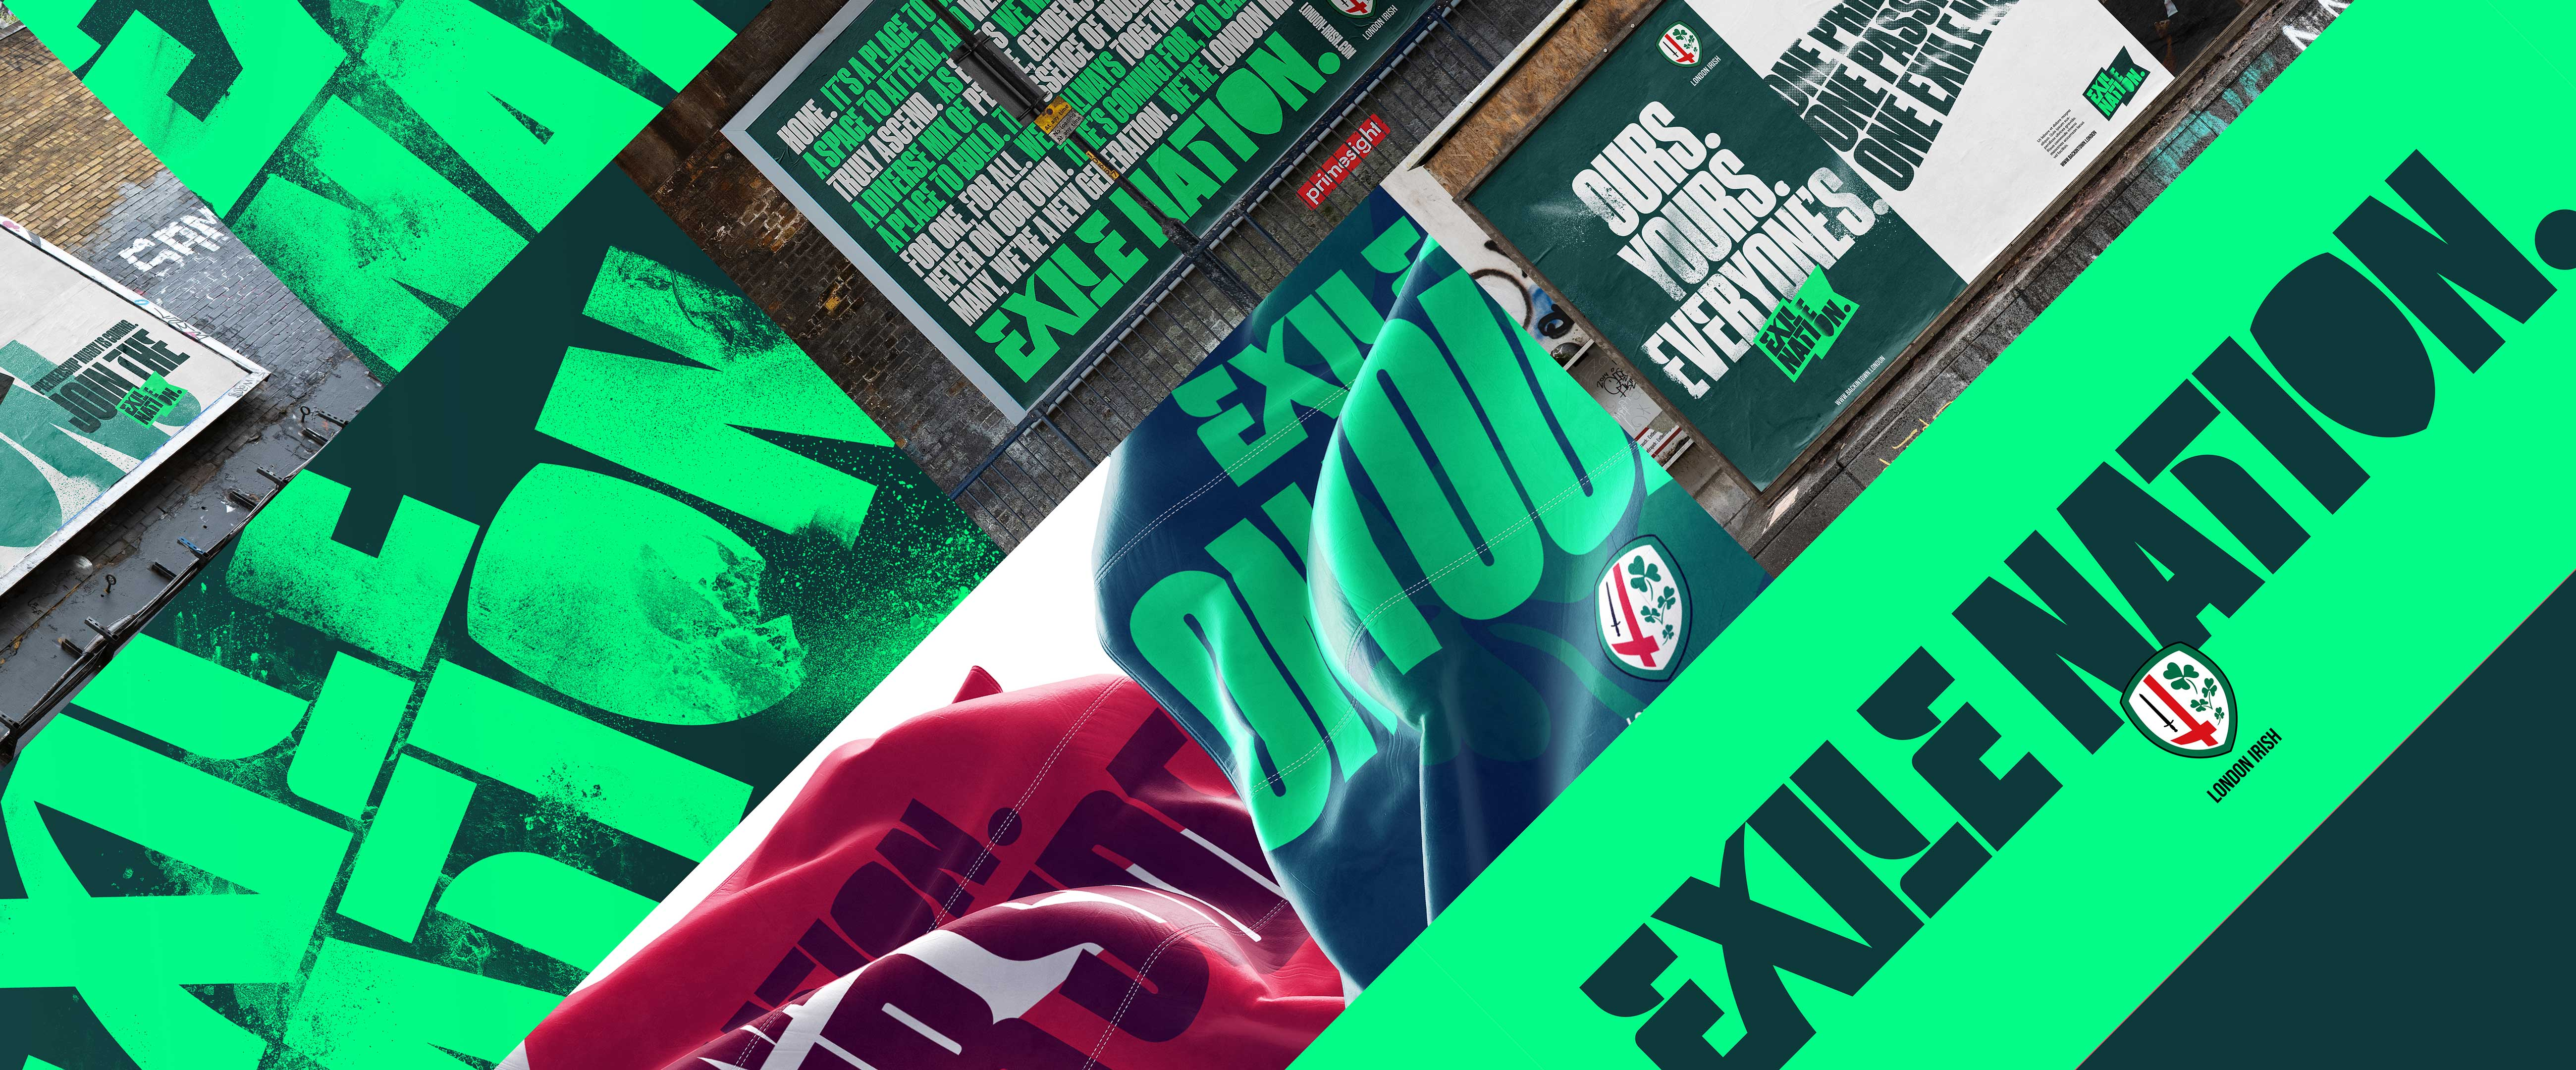 Brand identity design for London Irish Exile Nation campaign by UnitedUs Brighton